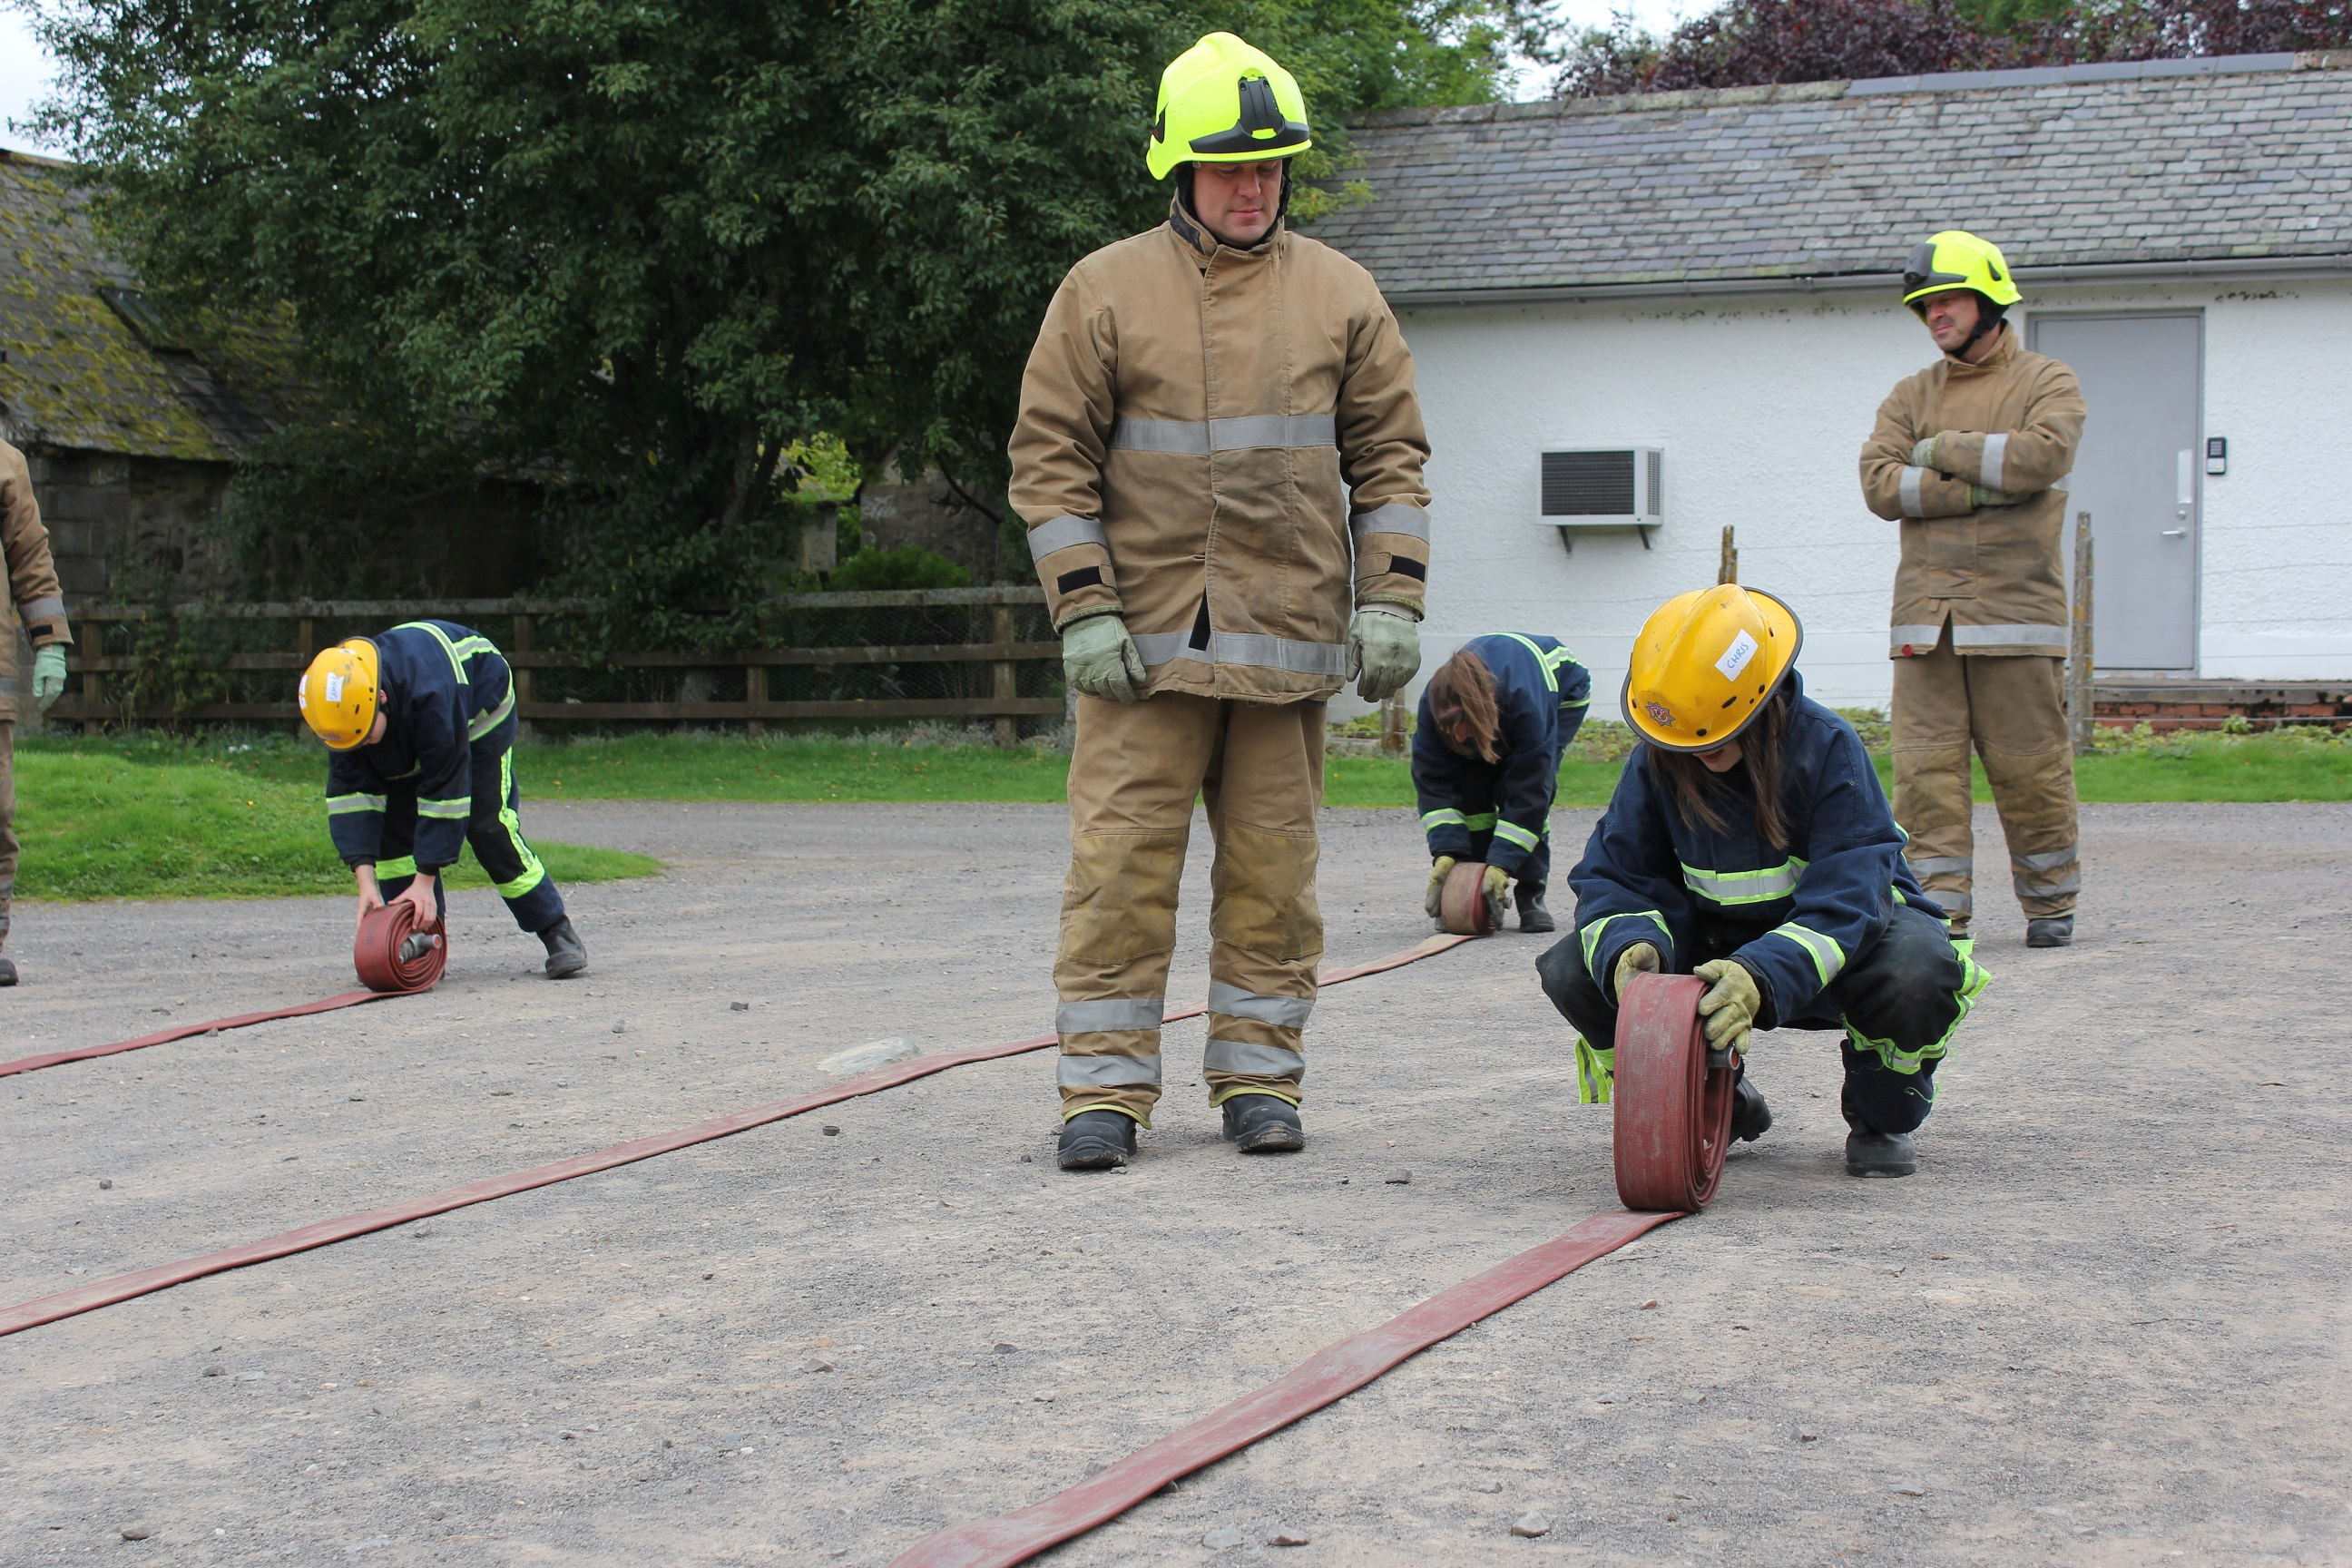 SFRS and partners run successful Fire Academy for young people in Angus